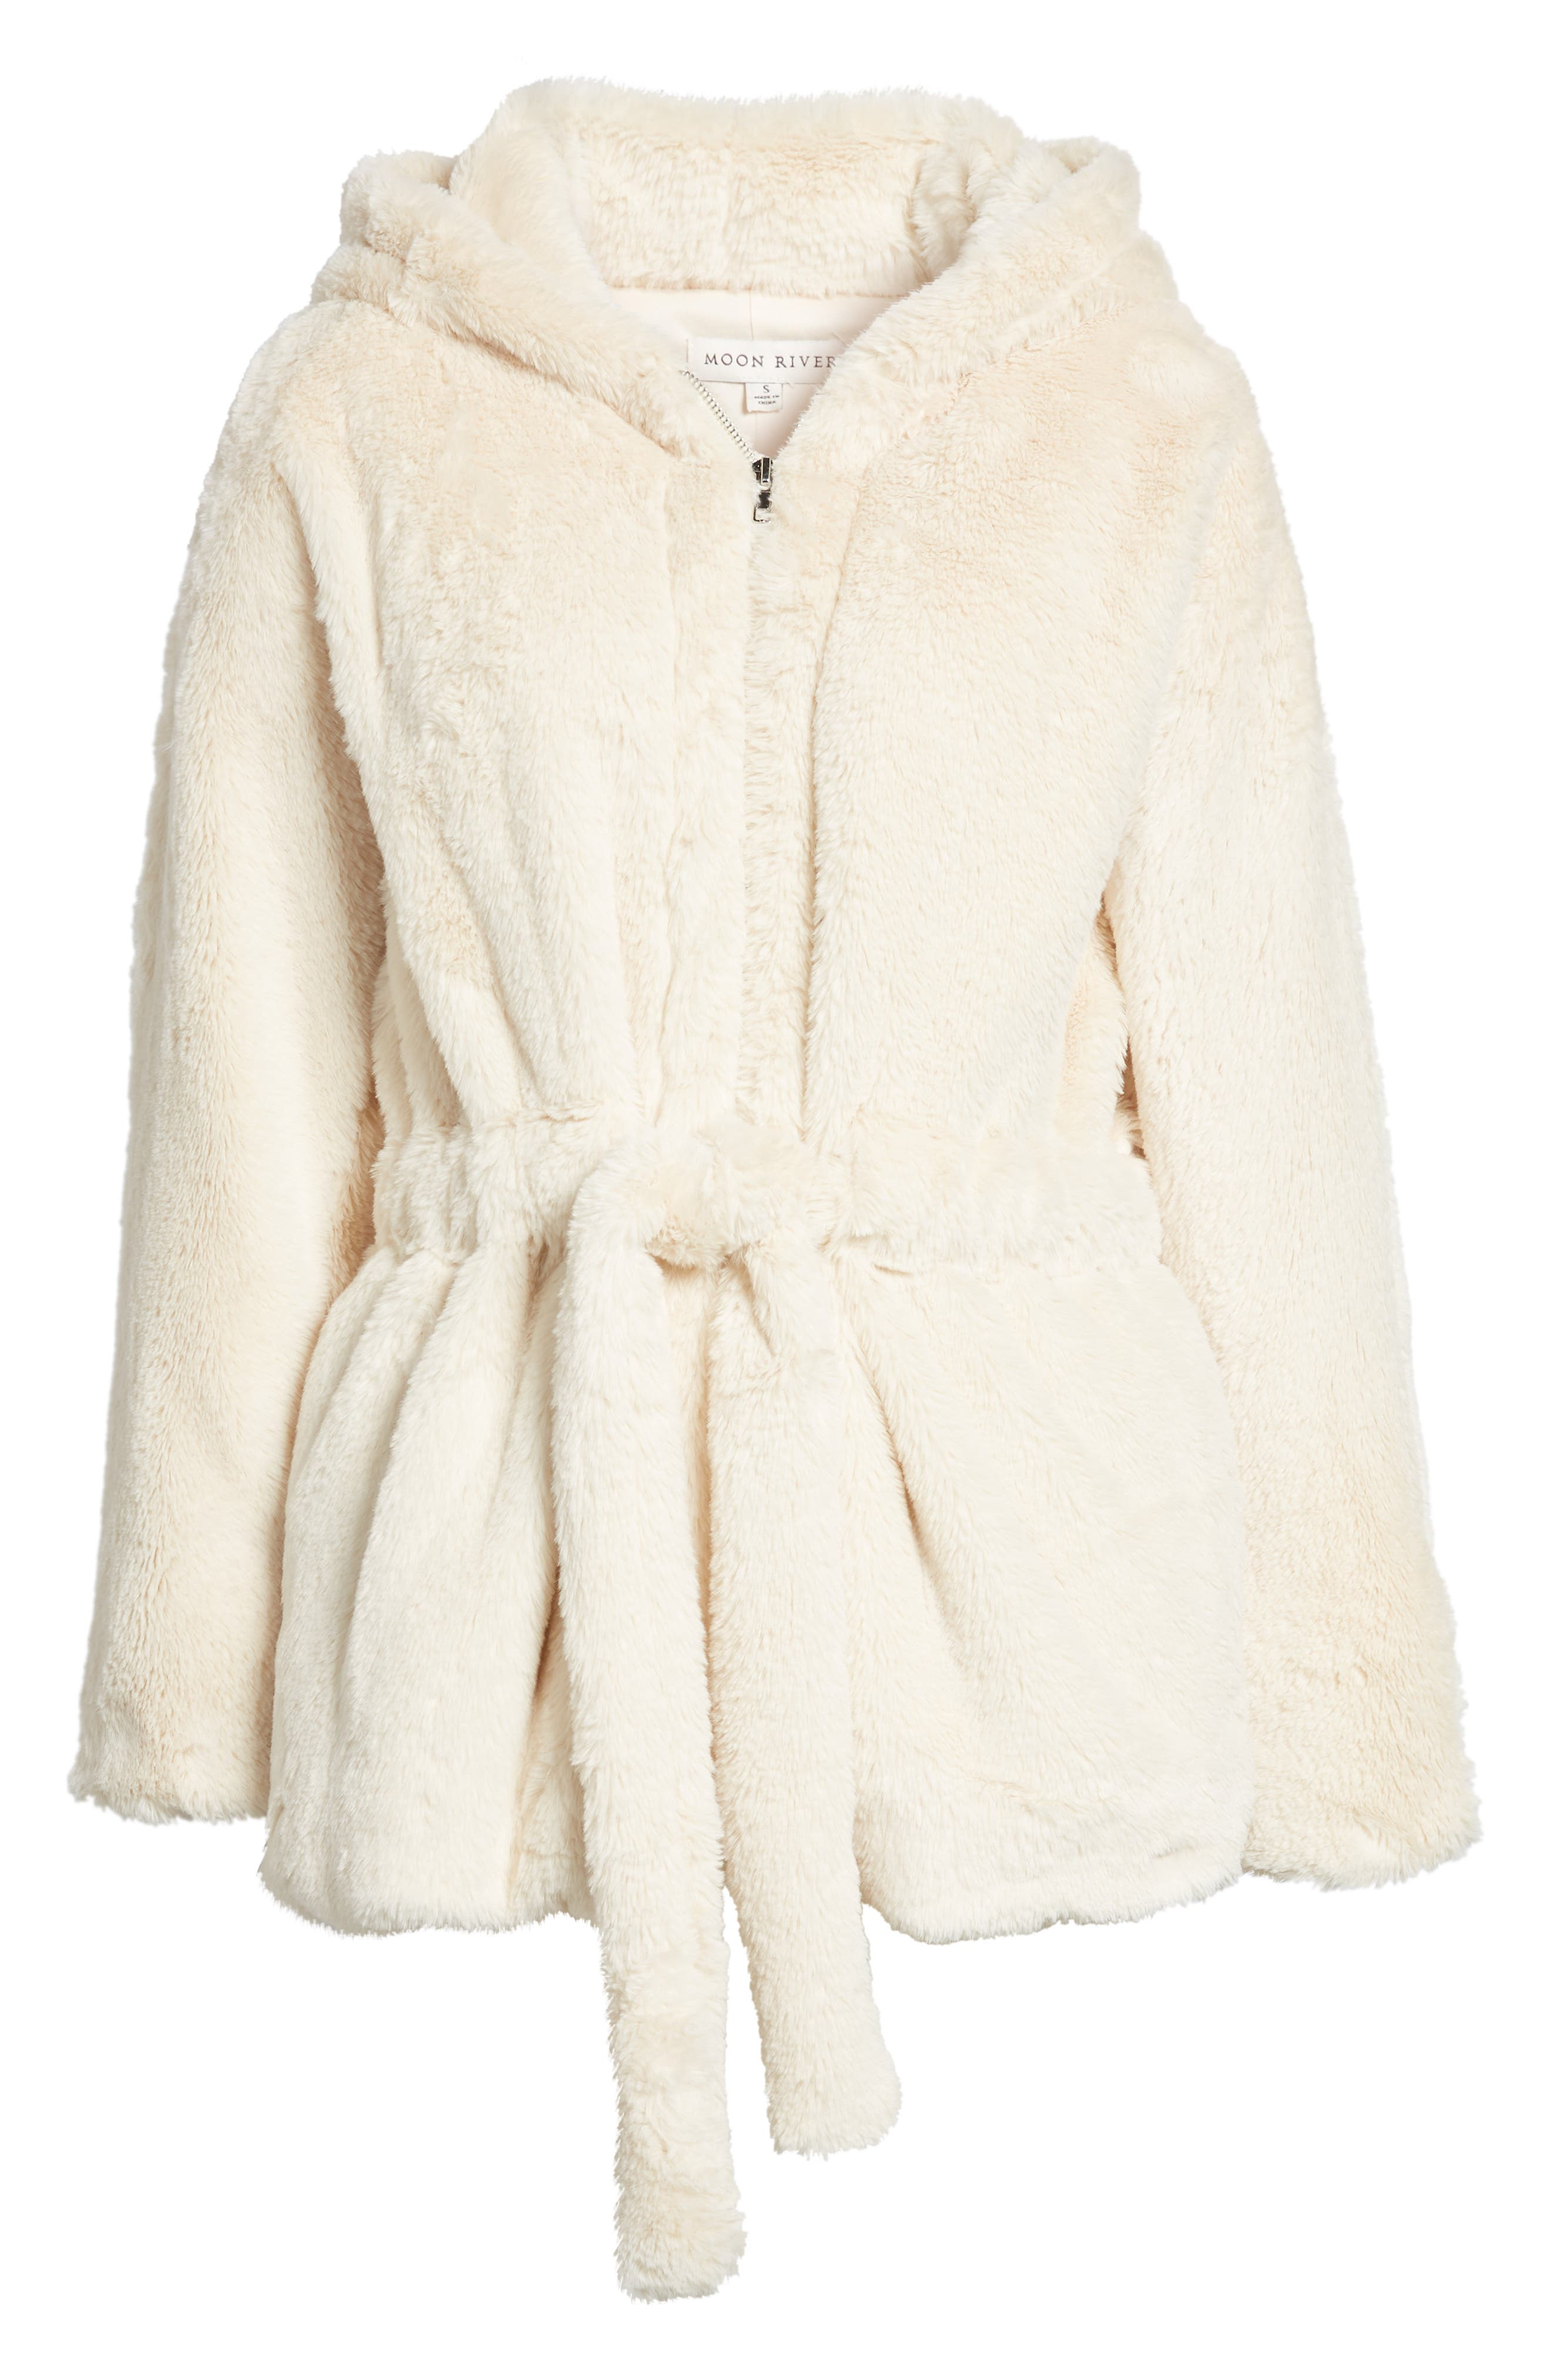 Faux Fur Hooded Jacket,                             Alternate thumbnail 6, color,                             900